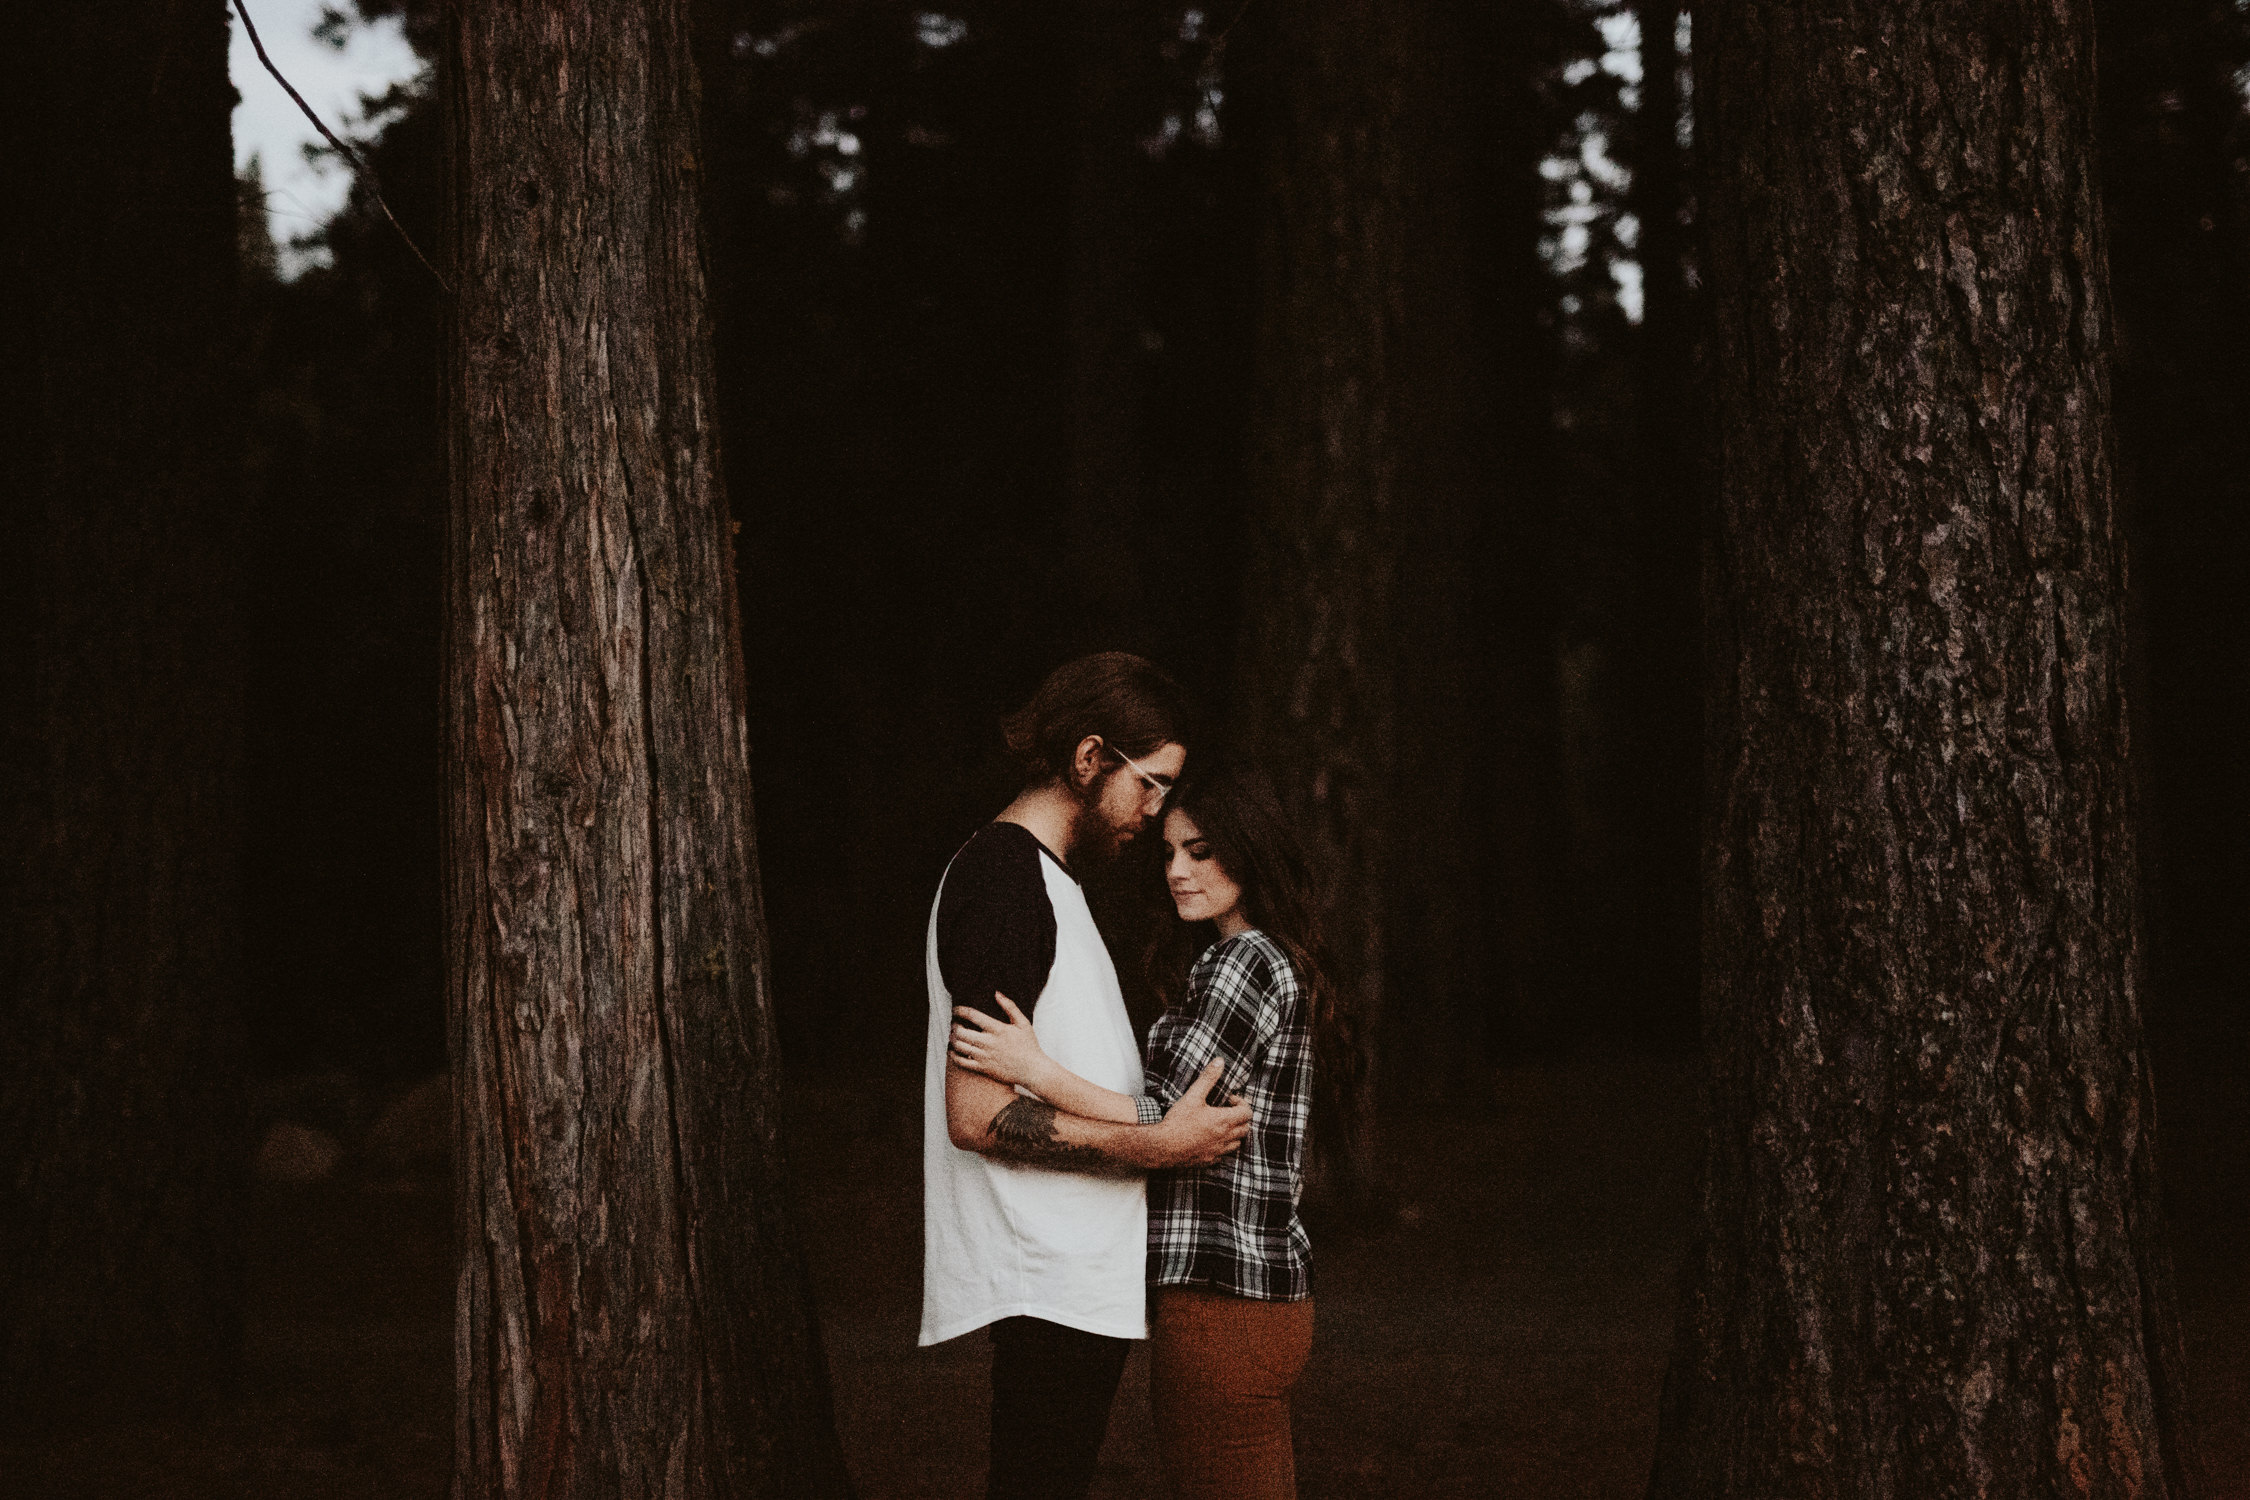 couple-intimate-engagement-session-northern-california-87.jpg